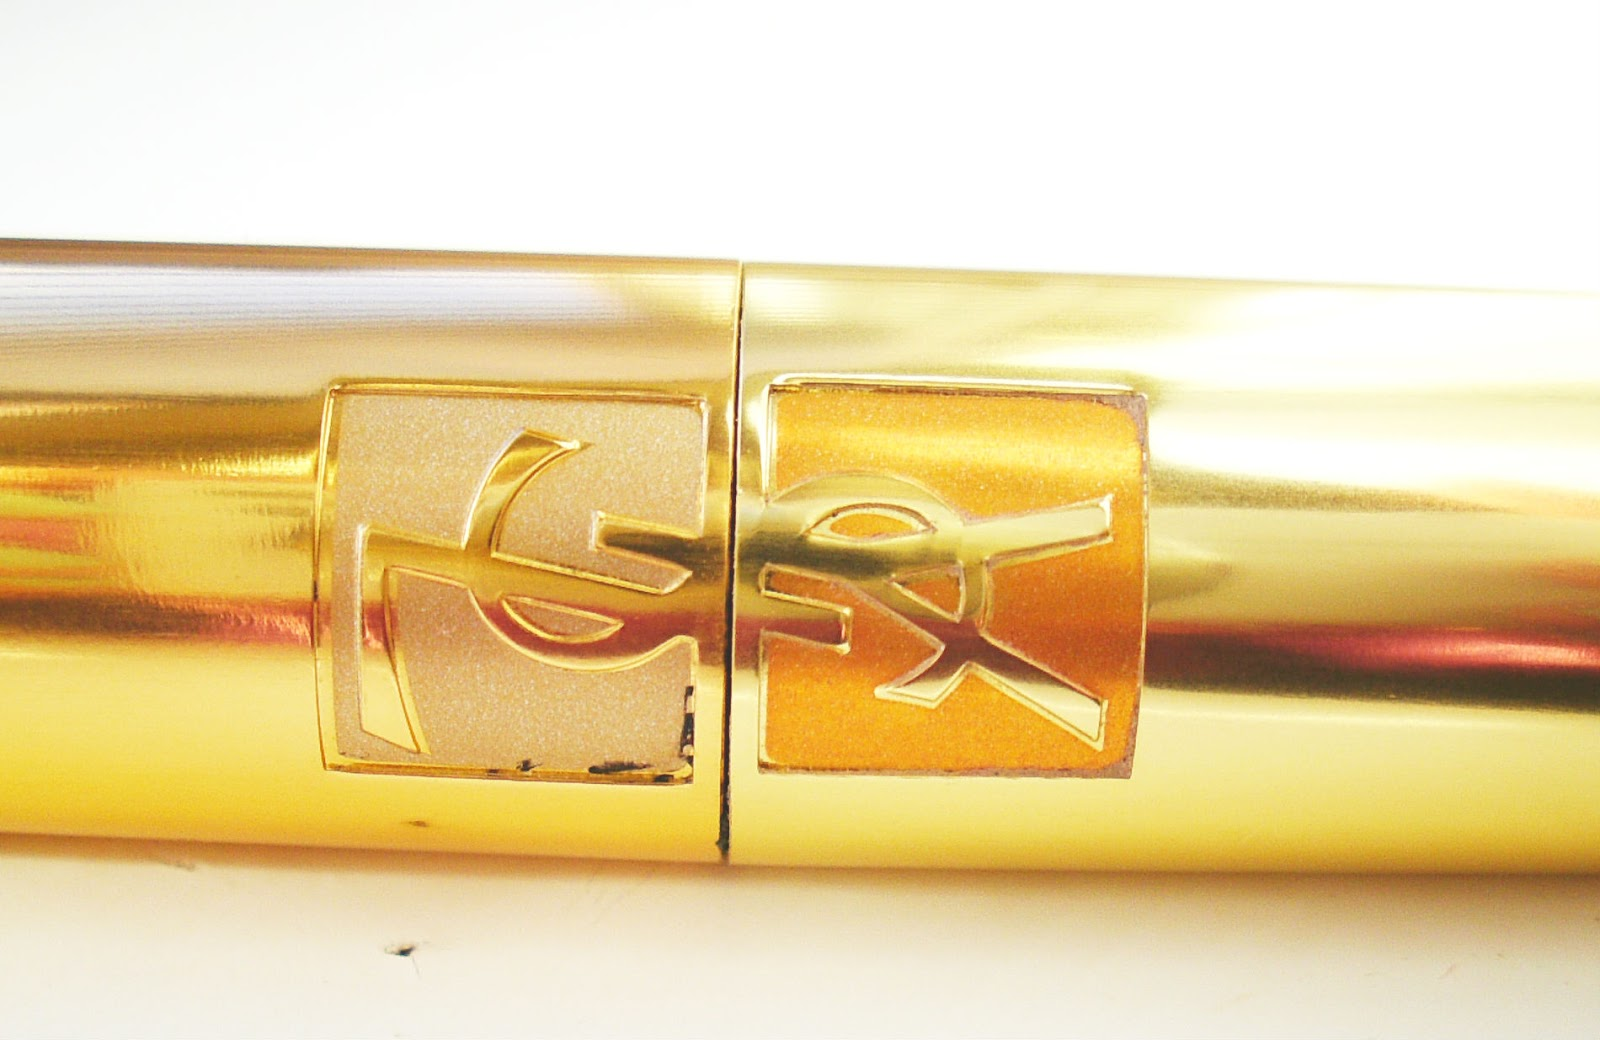 Yves Saint Laurent Shocking Mascara Review Tube